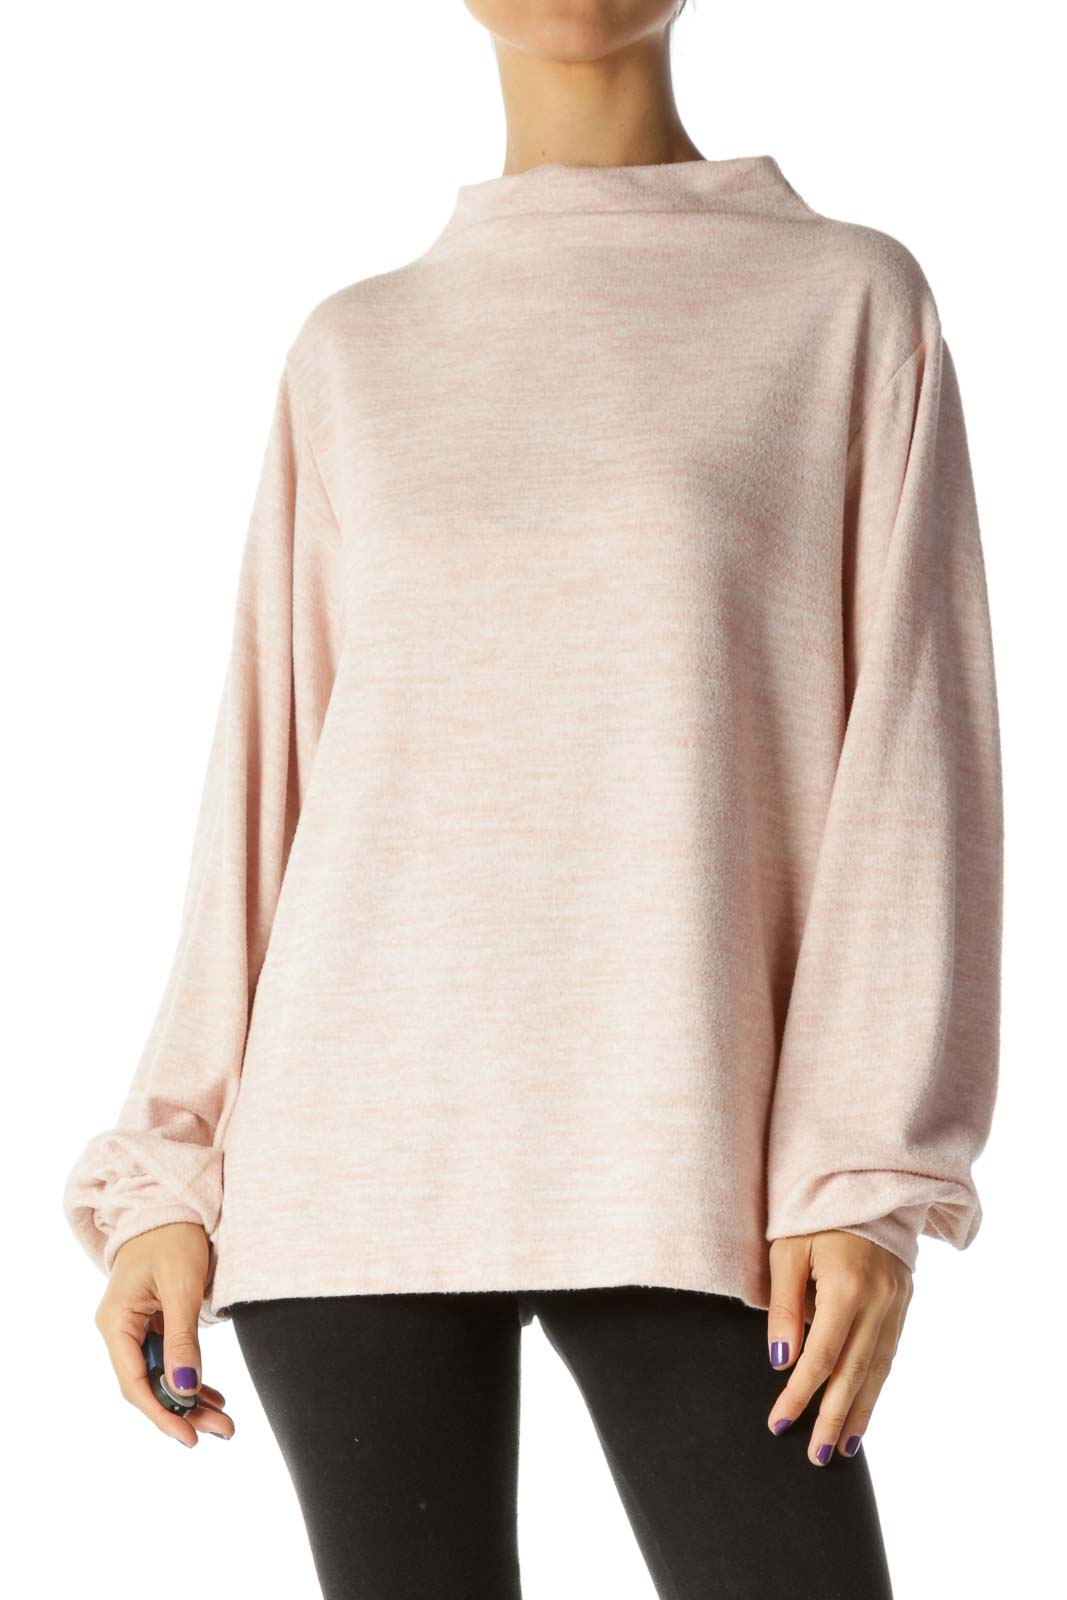 Pink Mottled High Neck Banded Sleeves Sweater